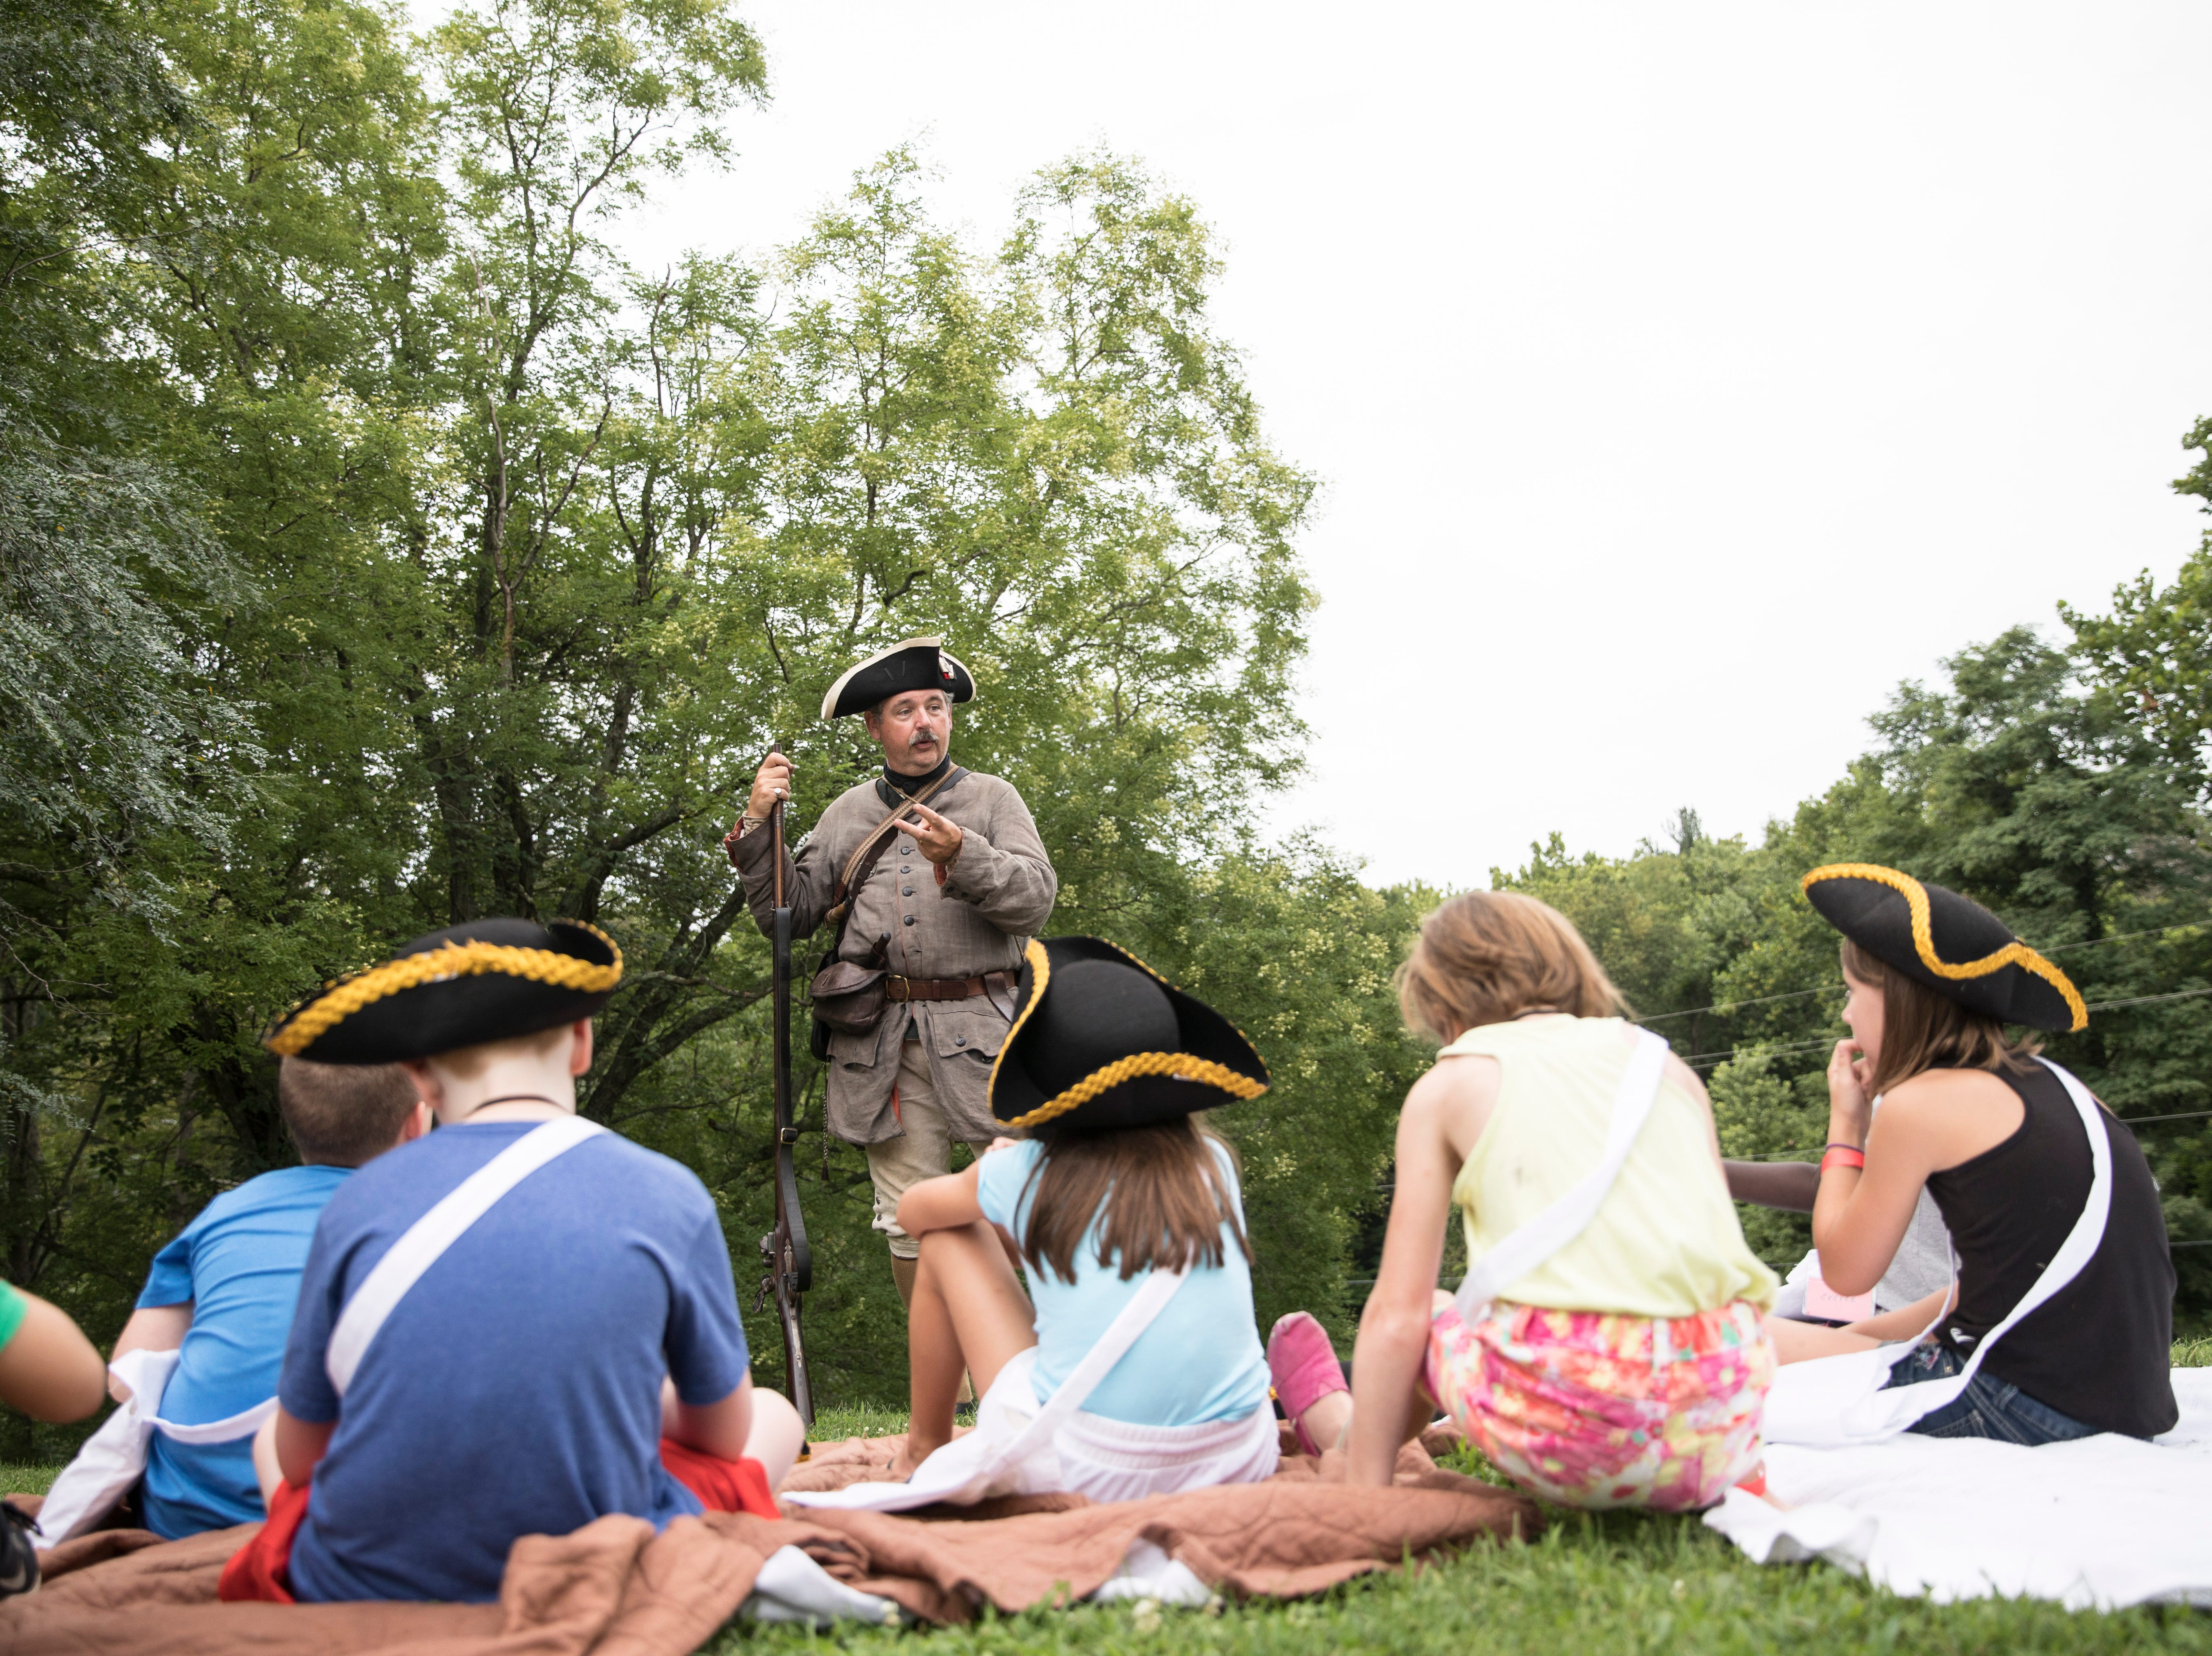 Liberty Camp fascinated local children of various ages as the Joseph Ogle Revolutionary War re-enactors told stories and reenacted significant moments in American history at the First Presbyterian Church in Chillicothe July 30 through Aug. 3.